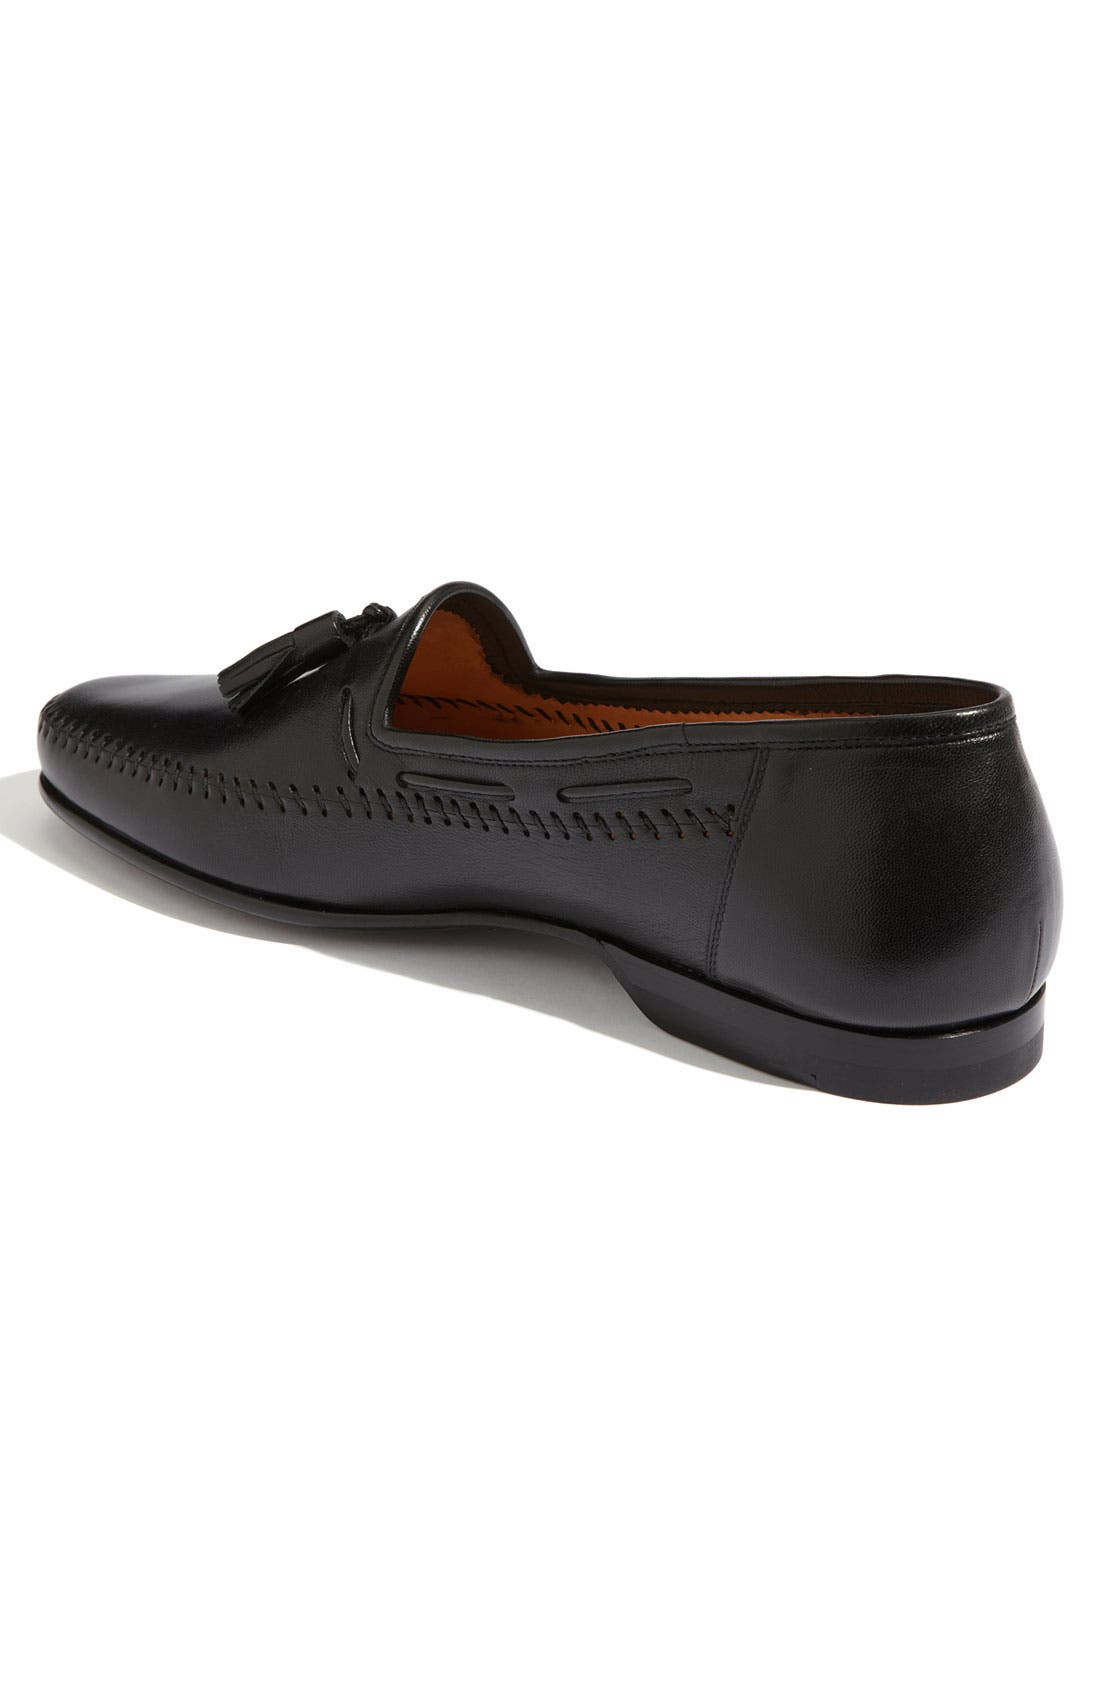 Alternate Image 2  - Magnanni 'Ancona' Loafer